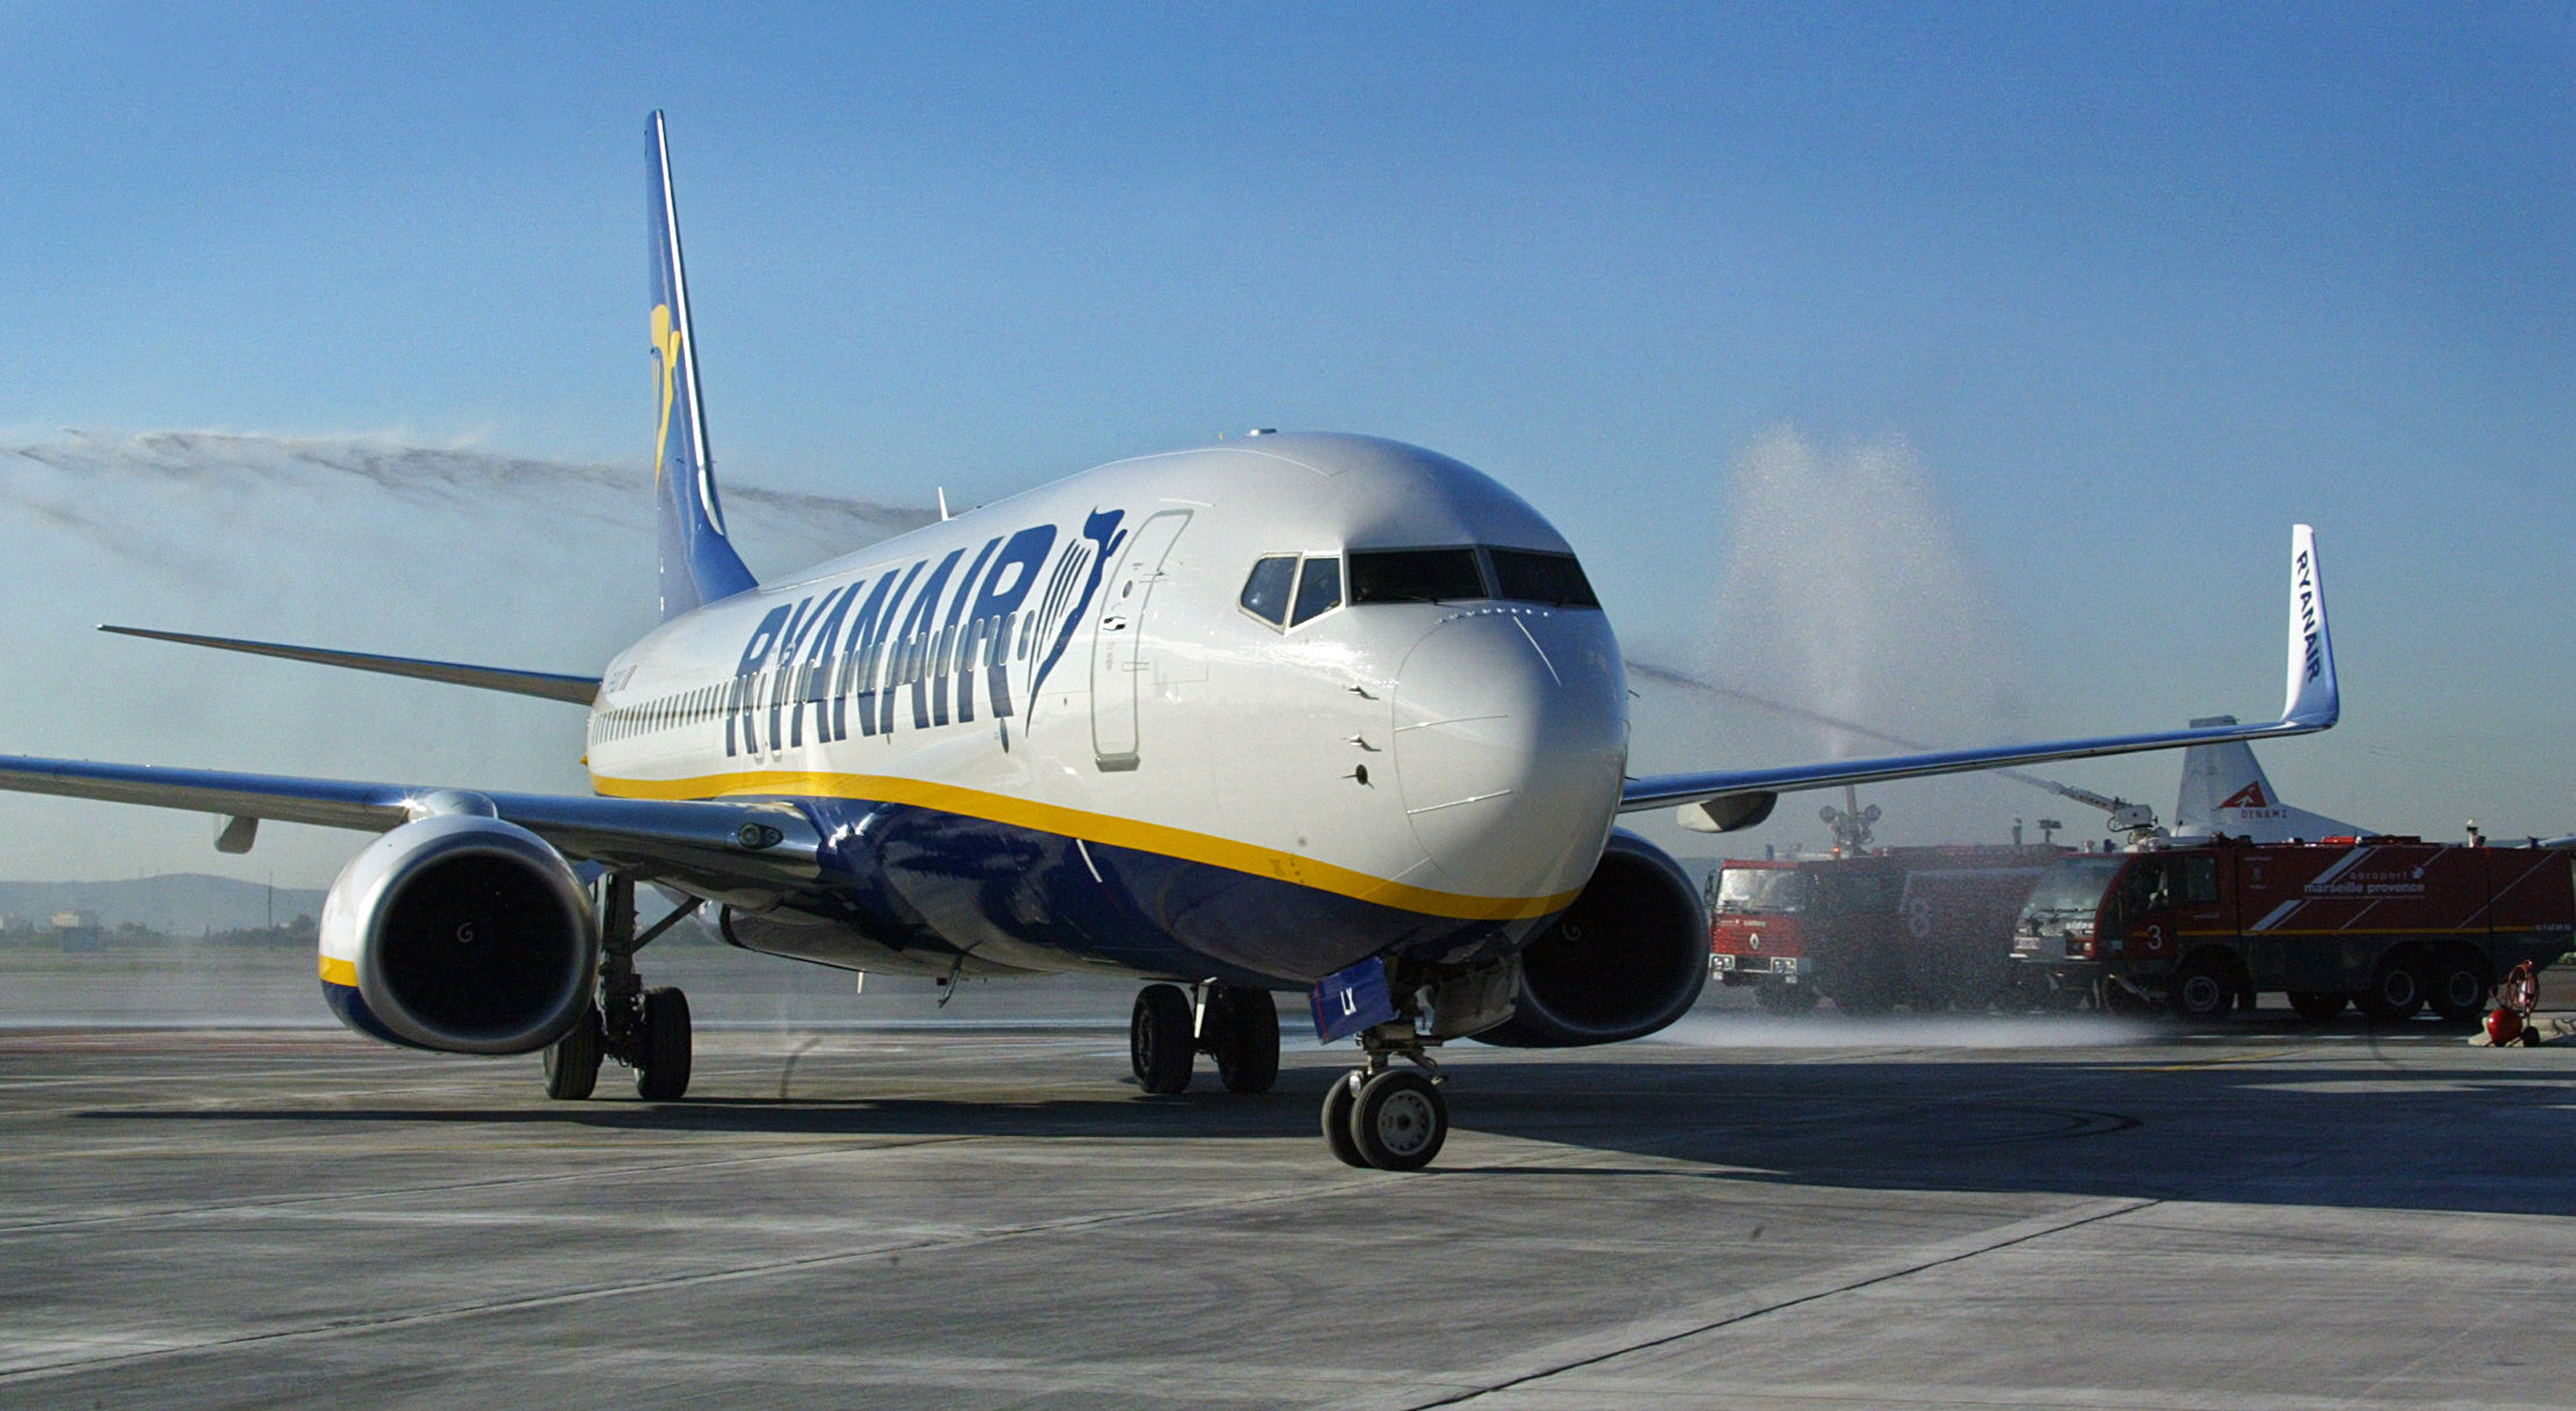 An Irish air company Ryanair Boeing 737-